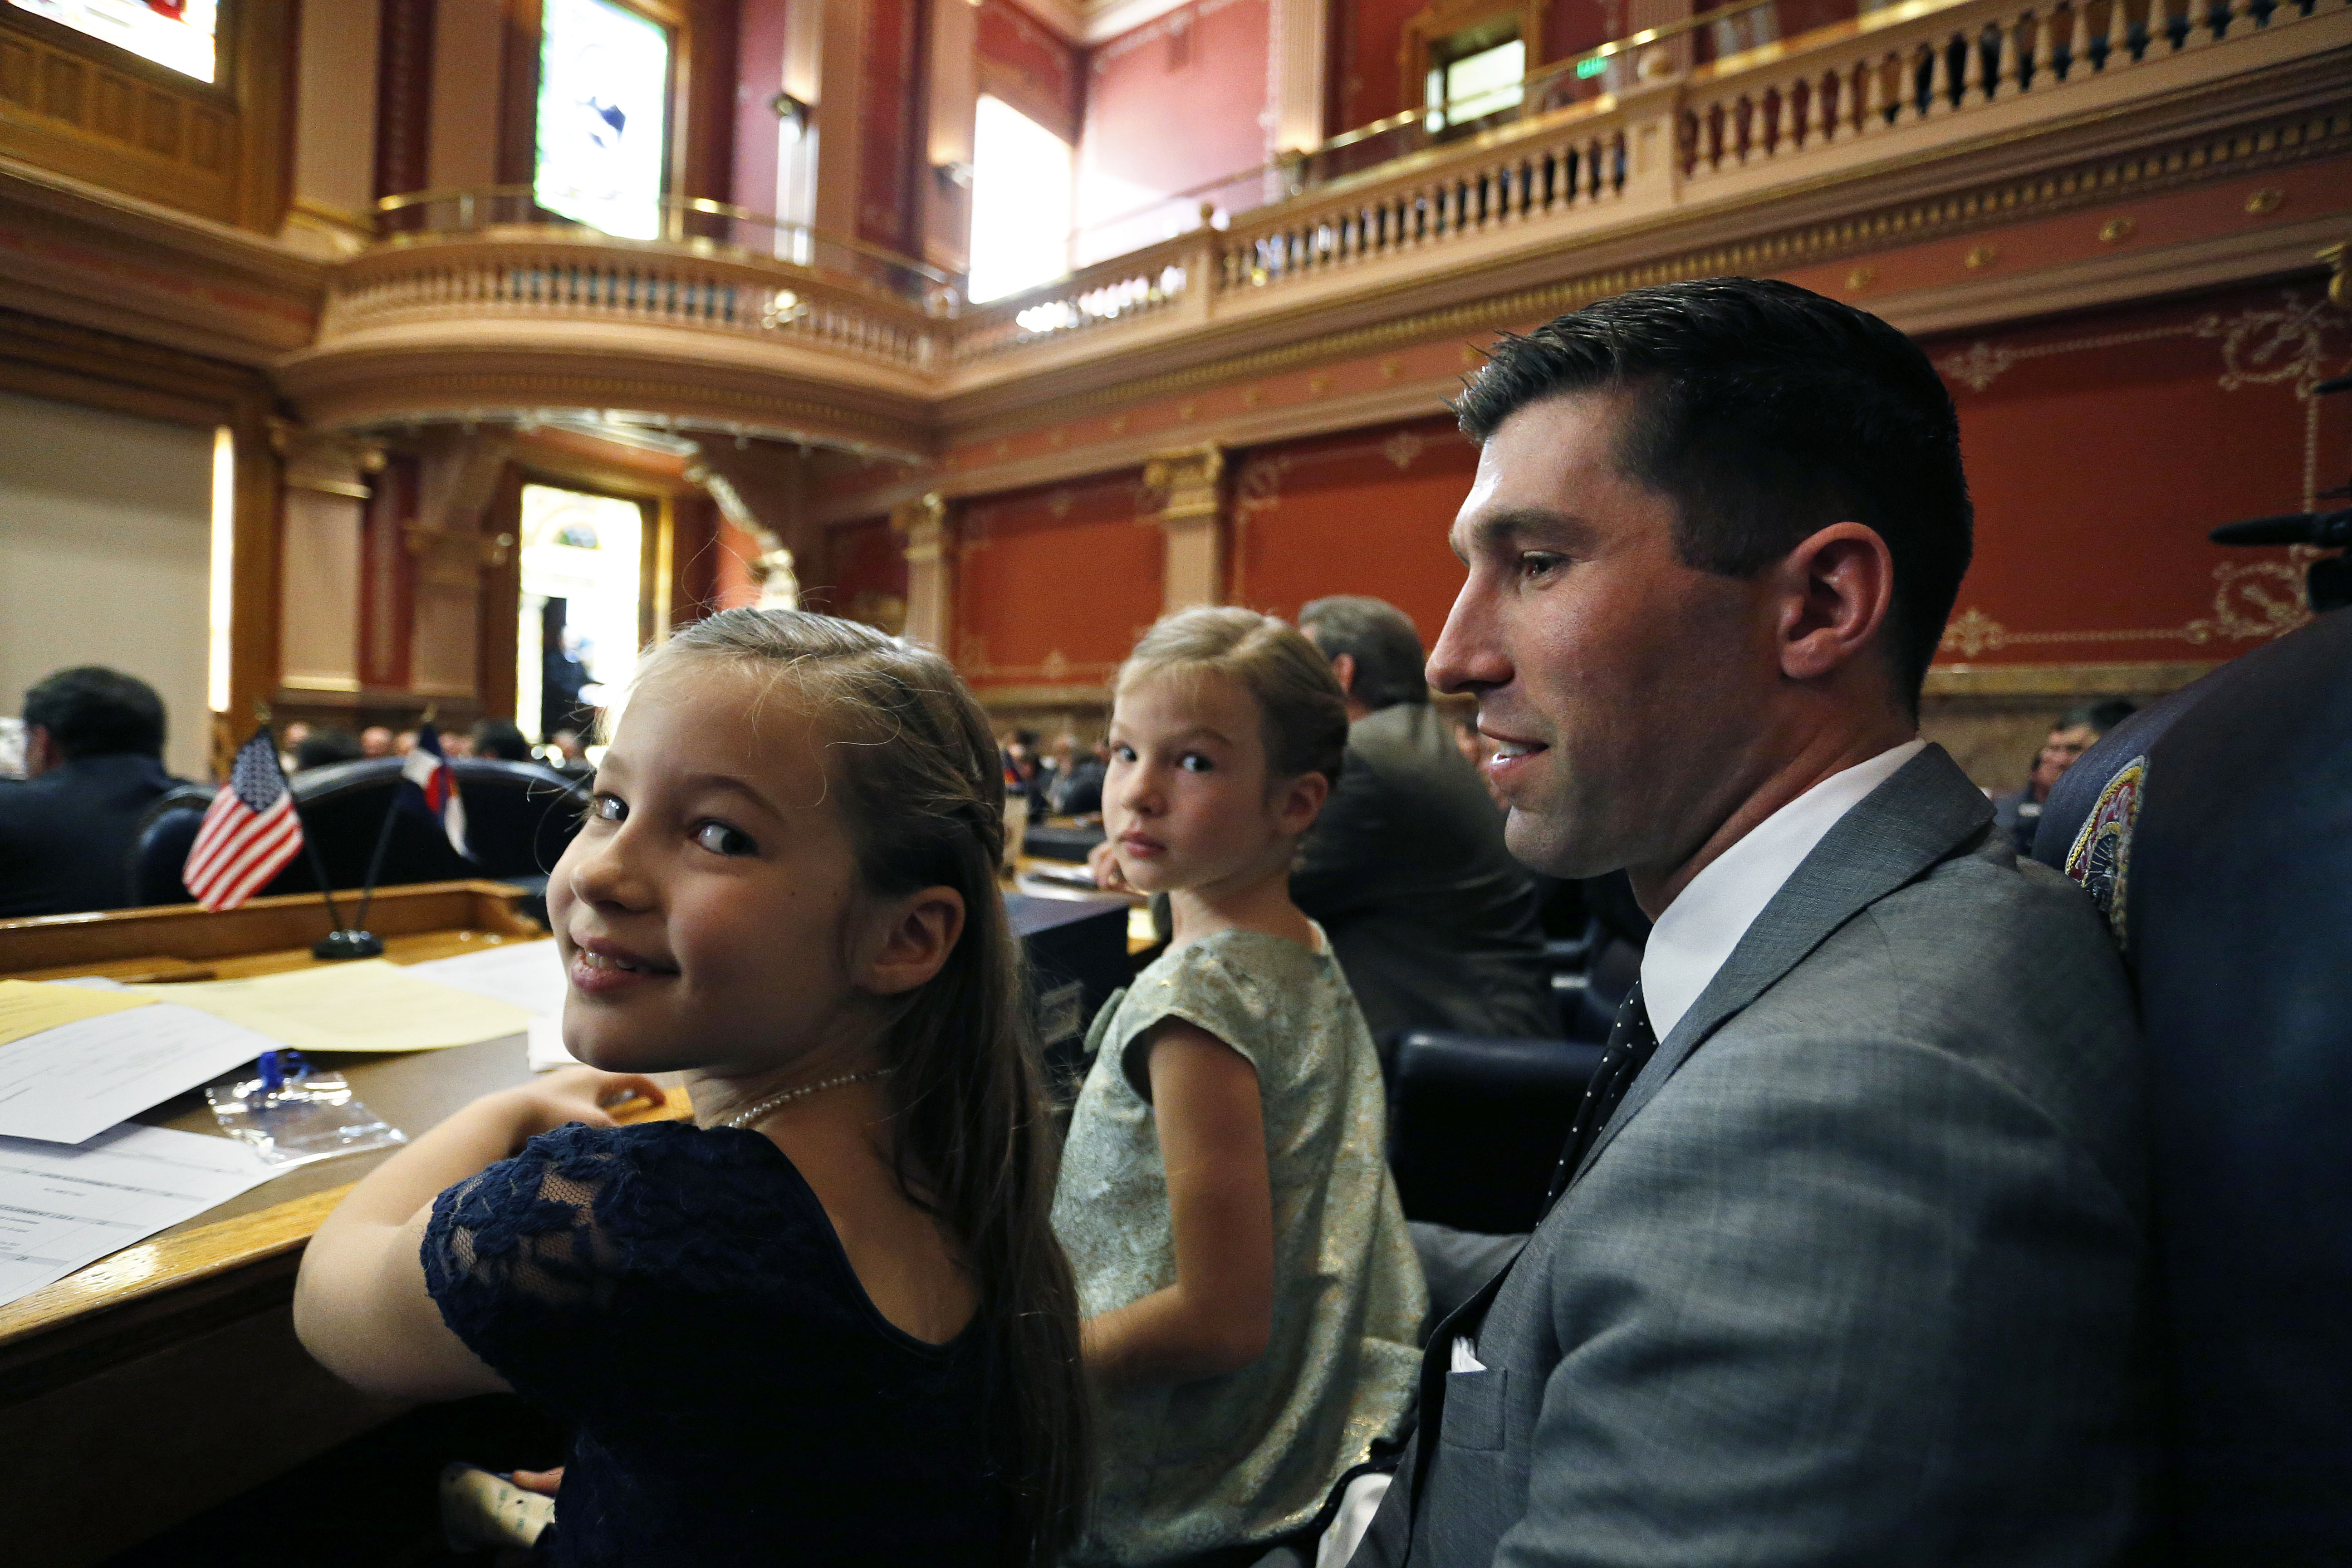 <p>Colorado Republican State Sen. Owen Hill sits with his daughters Miette, left, and Ellis on the opening day of the 2016 Colorado Legislature, at the Capitol, in Denver, Wednesday Jan. 13, 2016.</p>